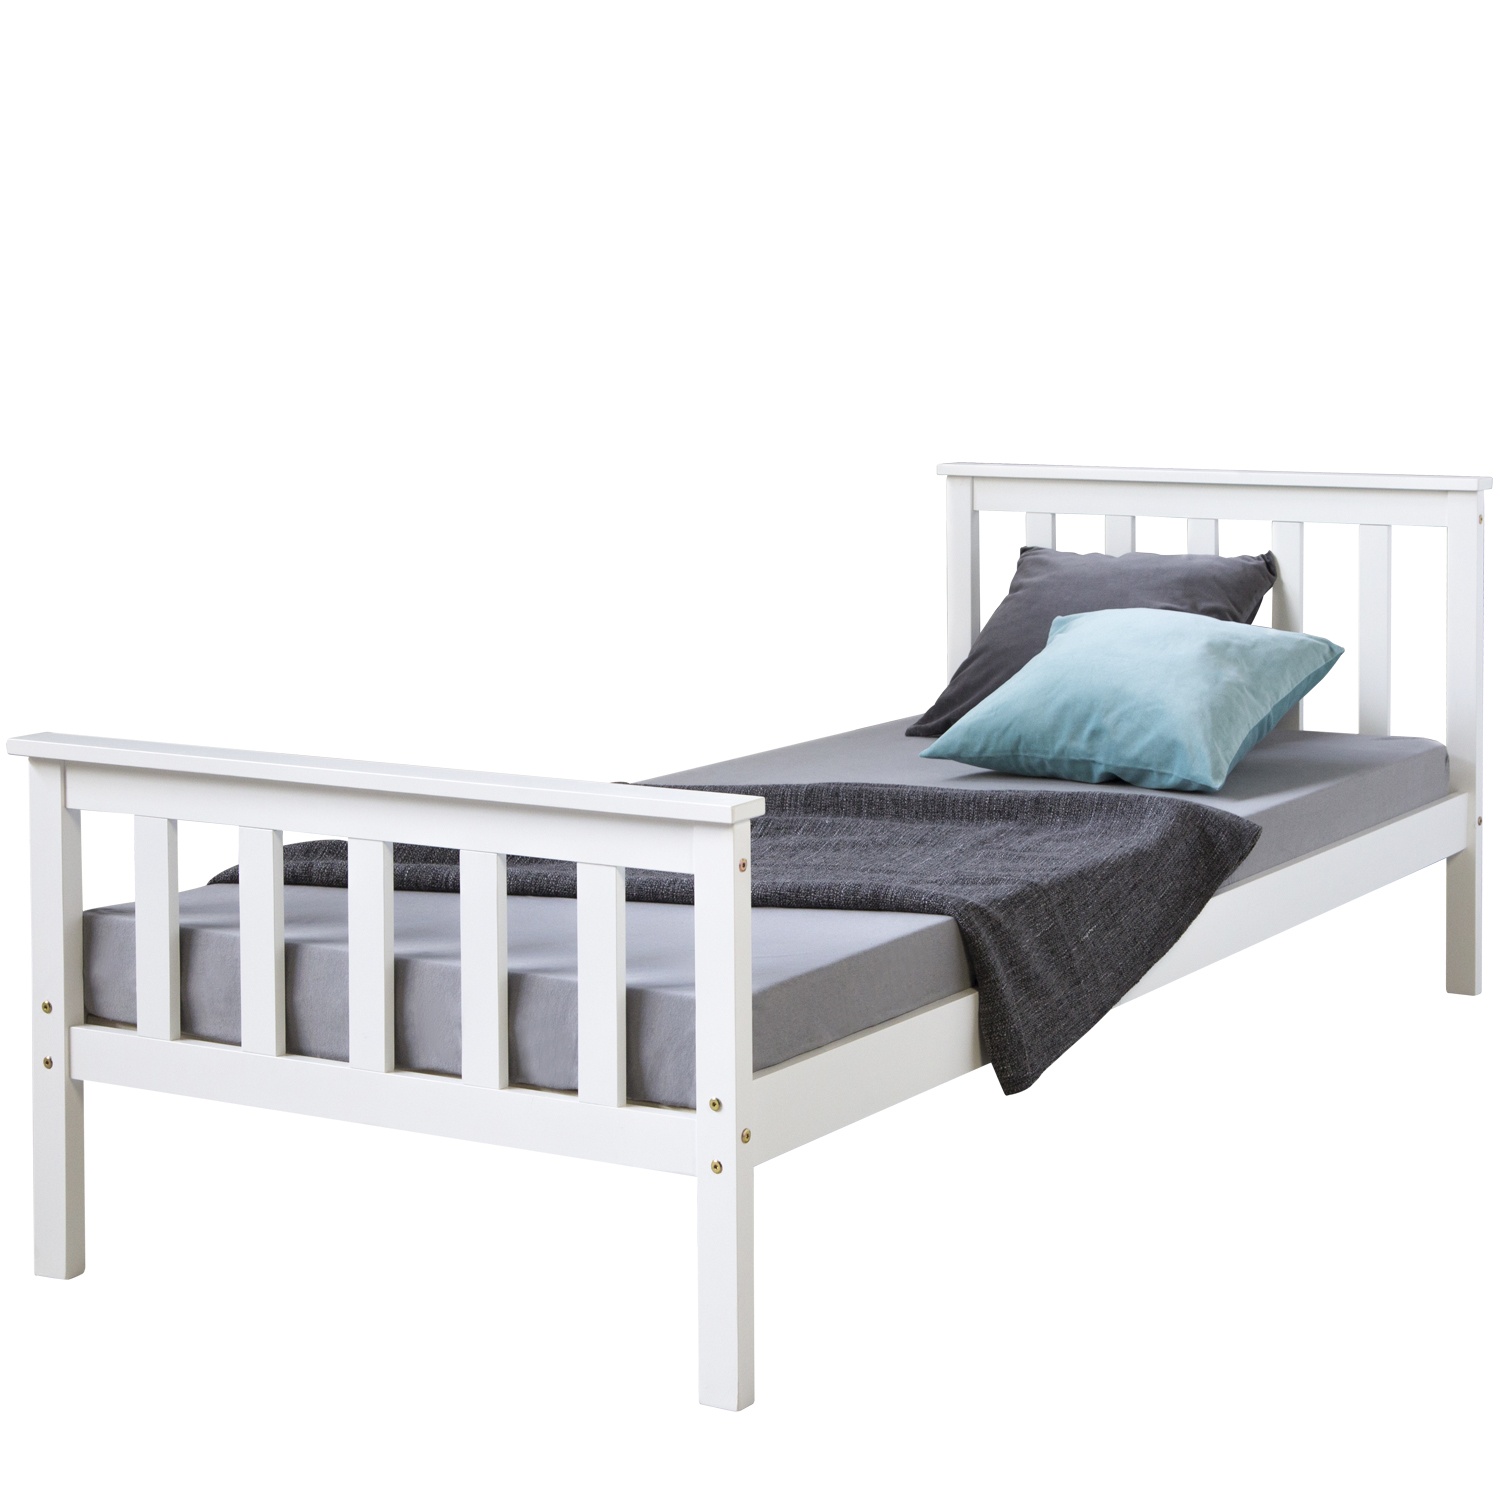 Tagesbett 140x200 3ft Single Bed Solid Pine Wooden Frame Bed Shaker Style Daybed White Guestbed